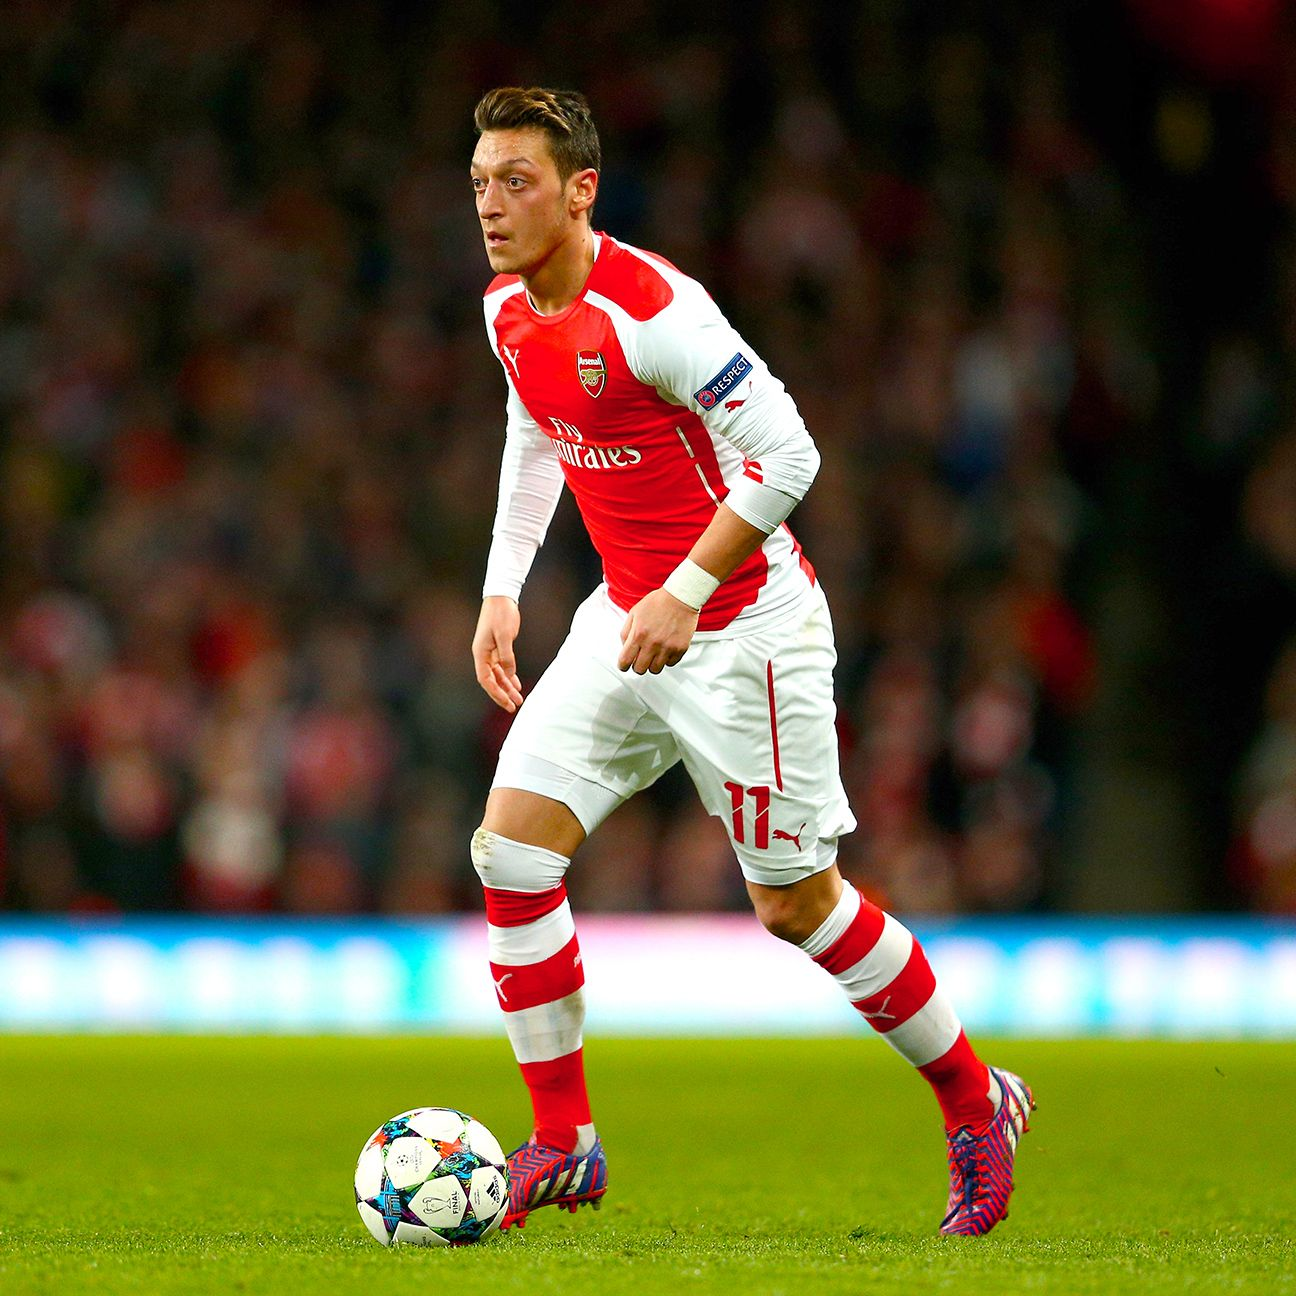 Arsenal will need Mesut Ozil at his best in their two Champions League ties versus Bayern Munich.